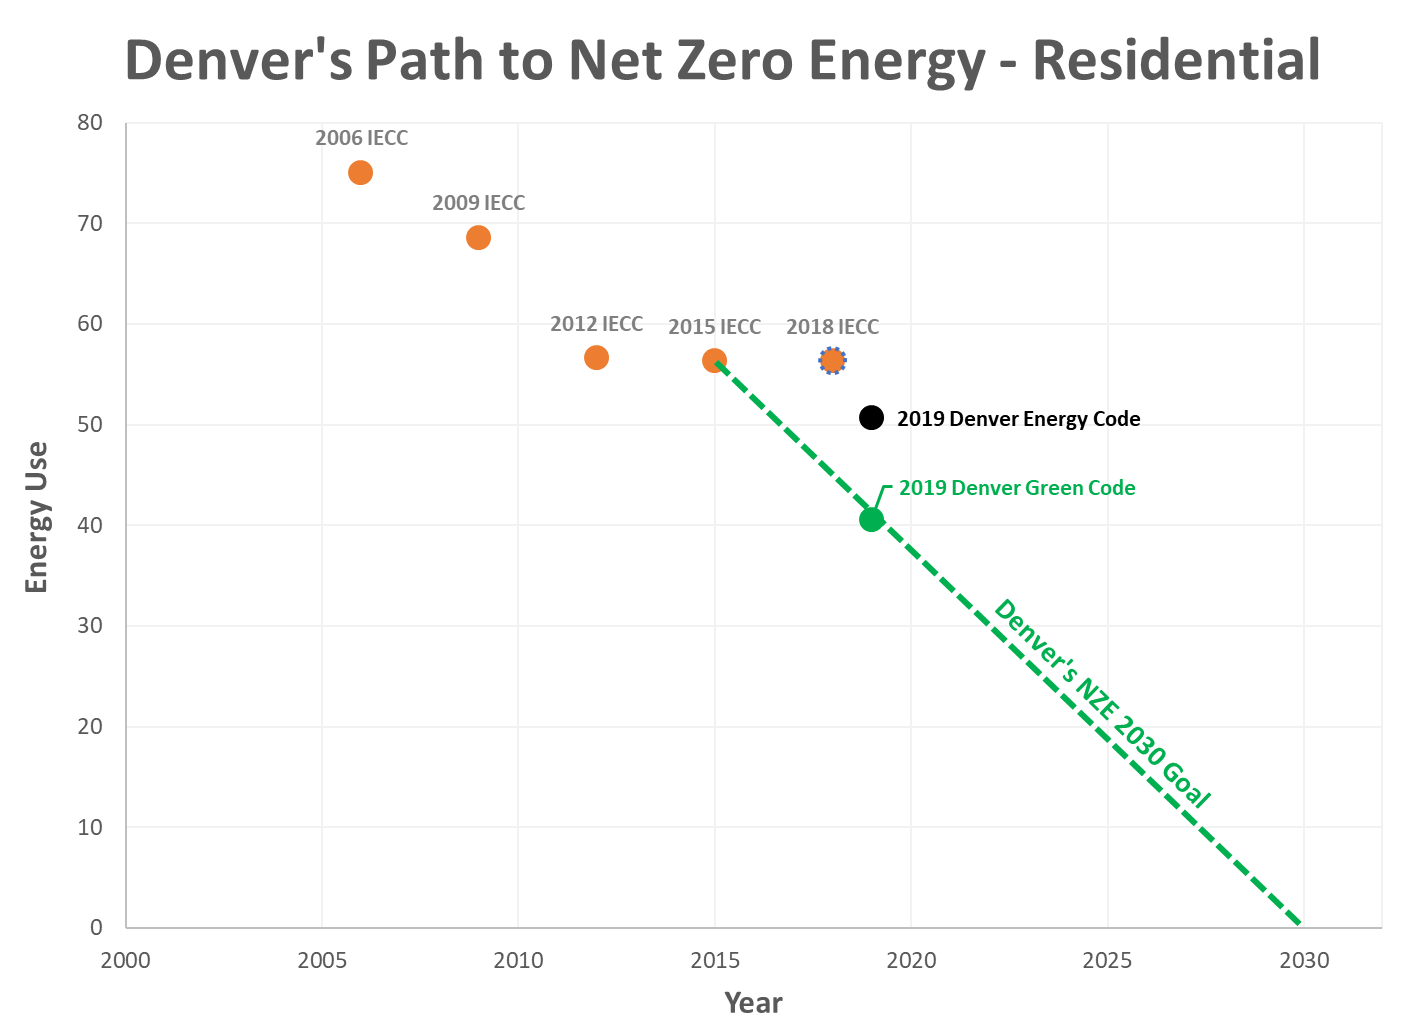 Graph of Denver's Path to NZE - Residential